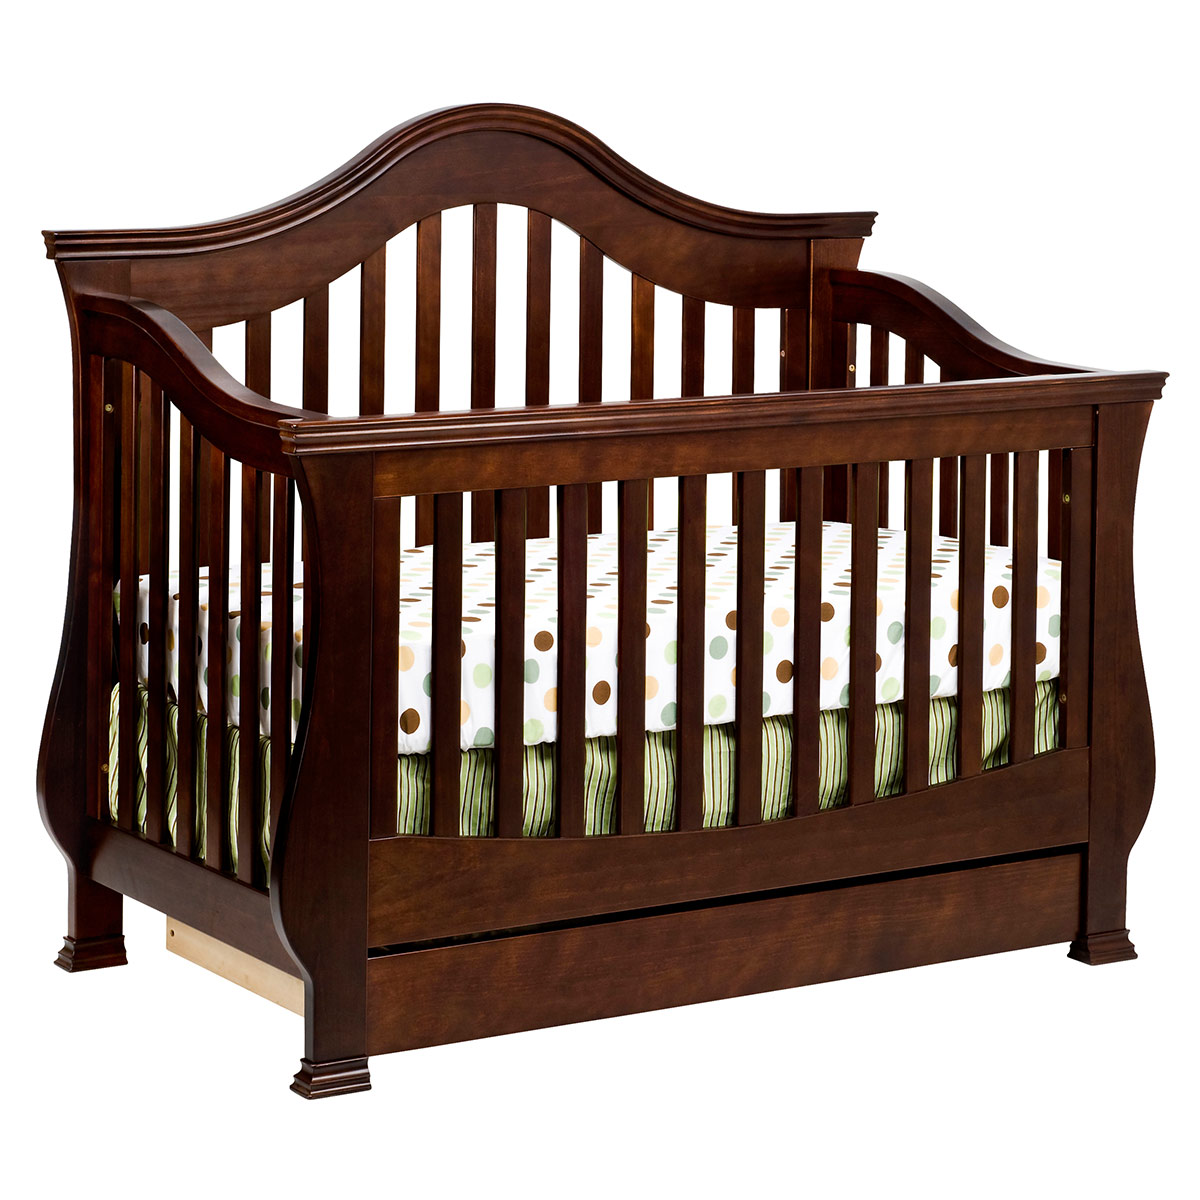 Cheap Cribs | Target Crib | Cribs Under $100